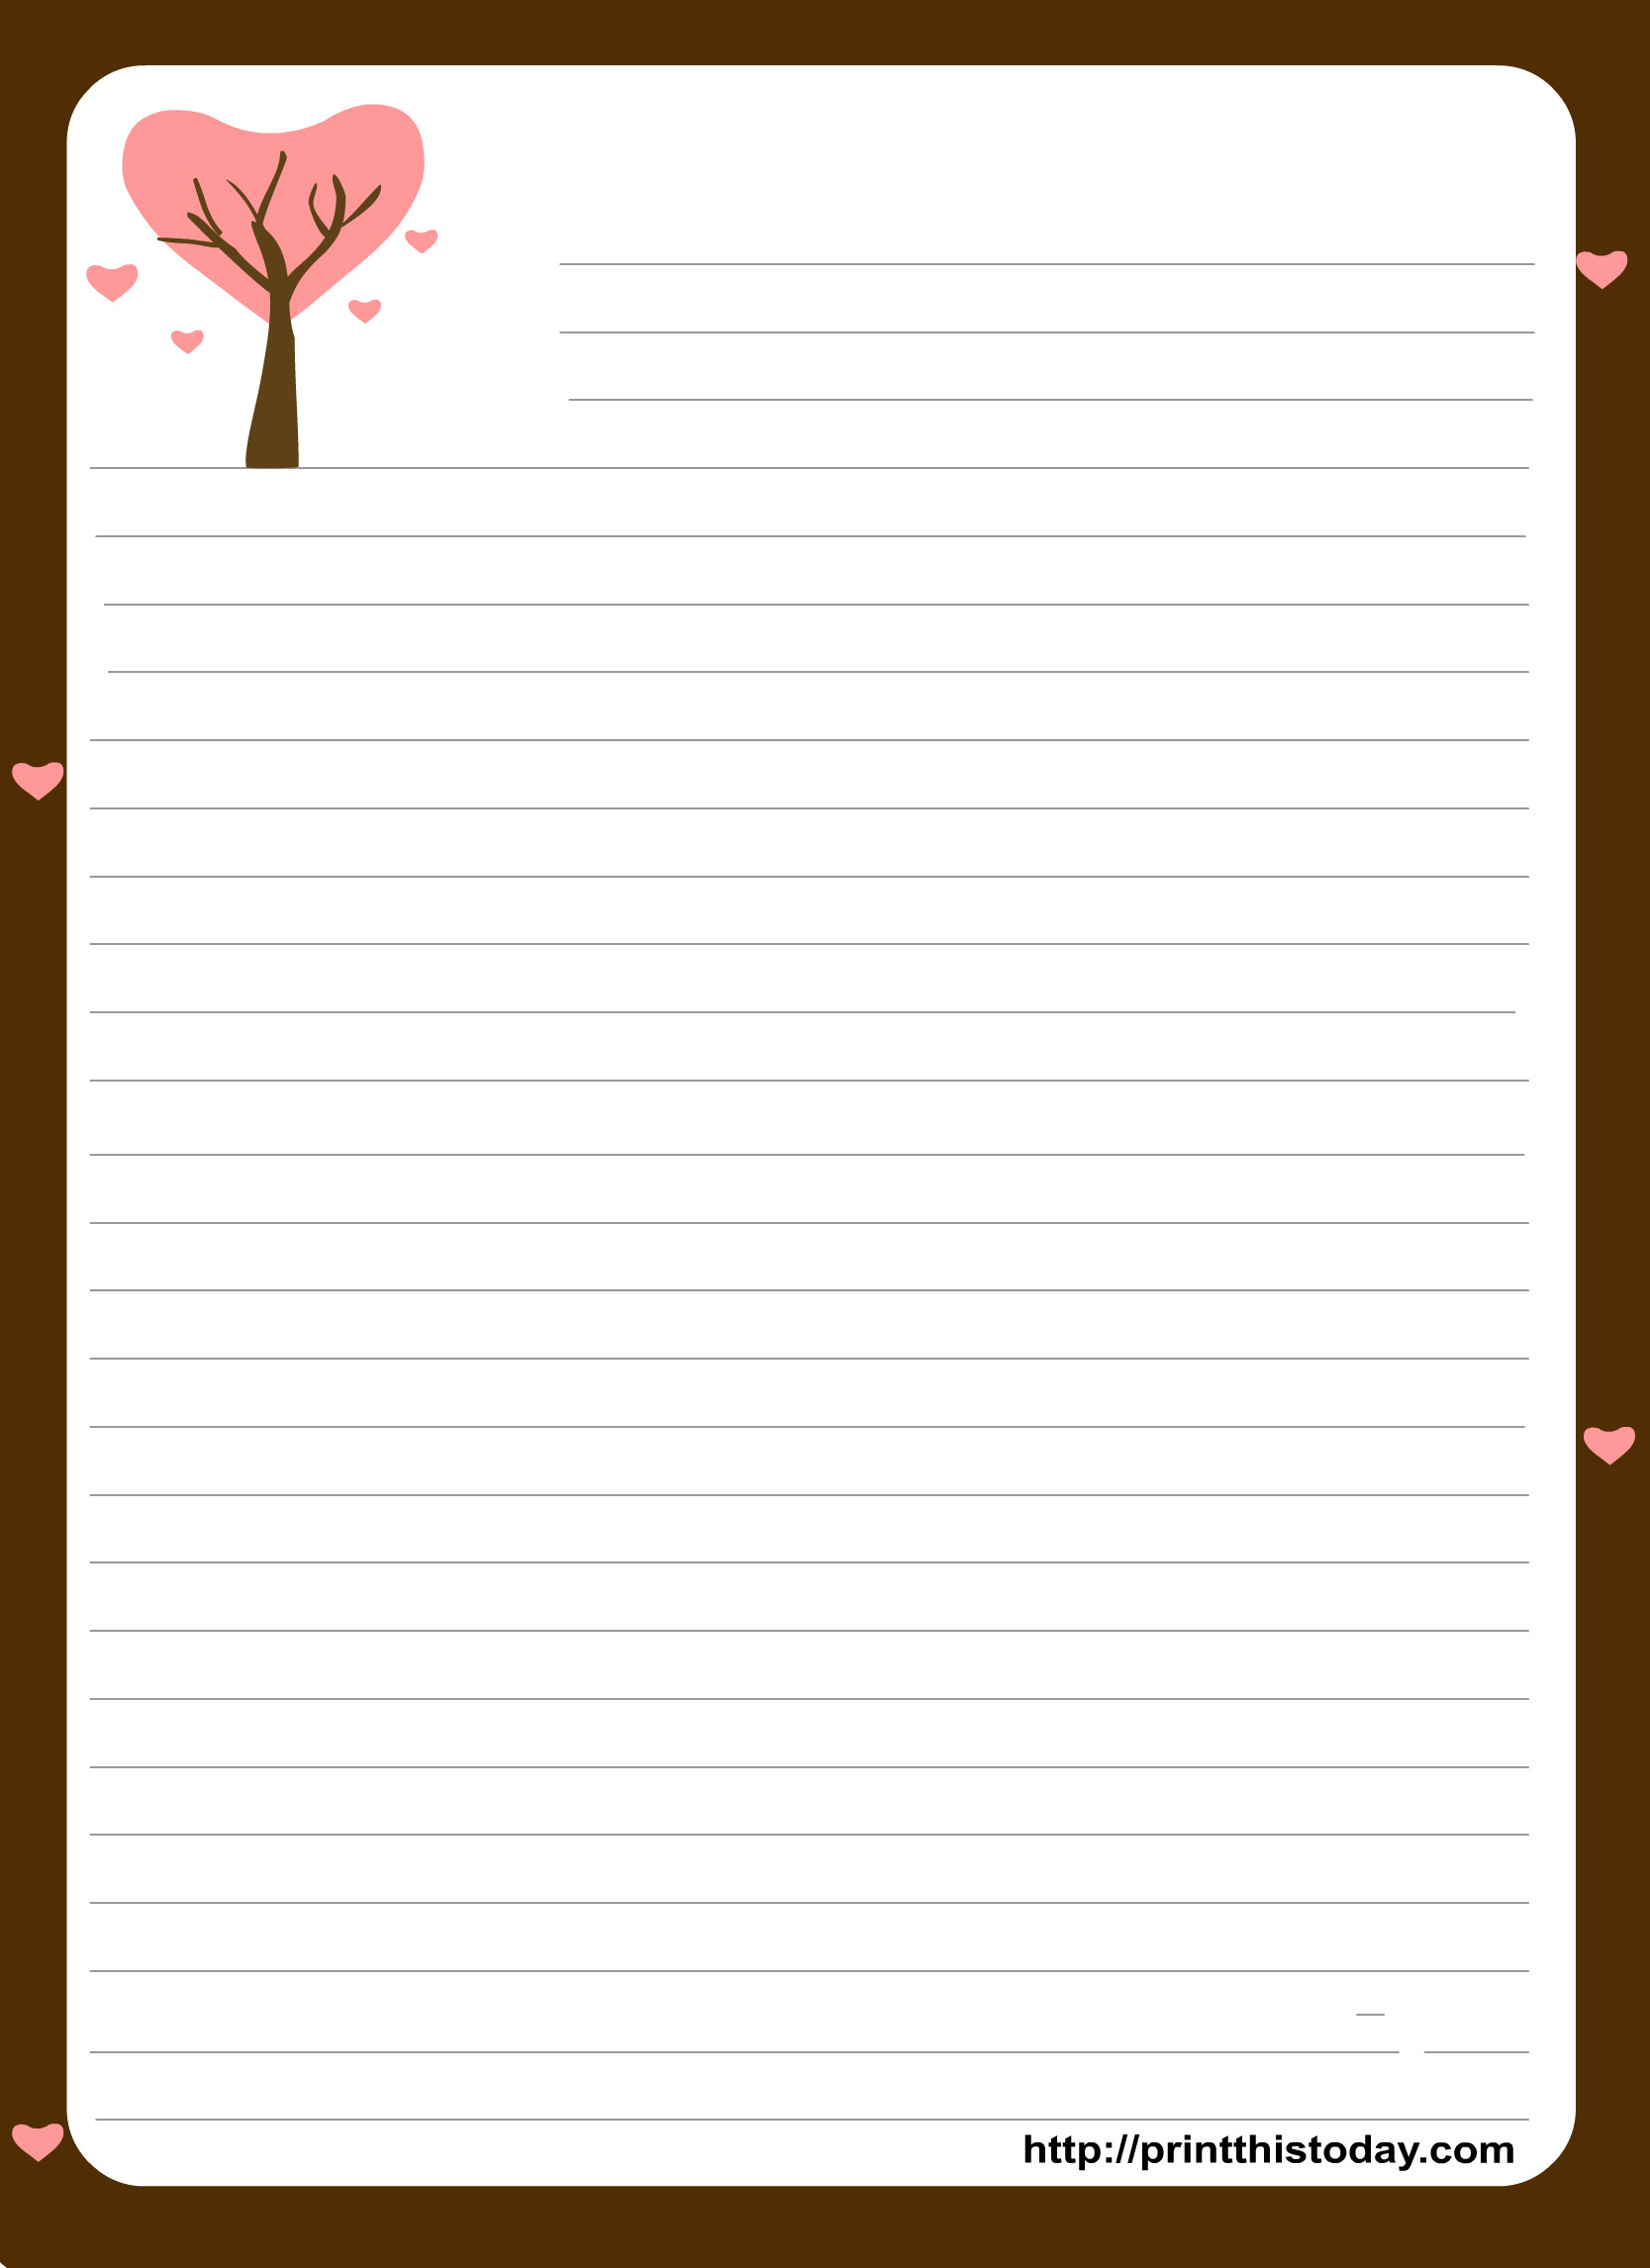 Free Stationery Paper Templates Free Printable Stationery Paper